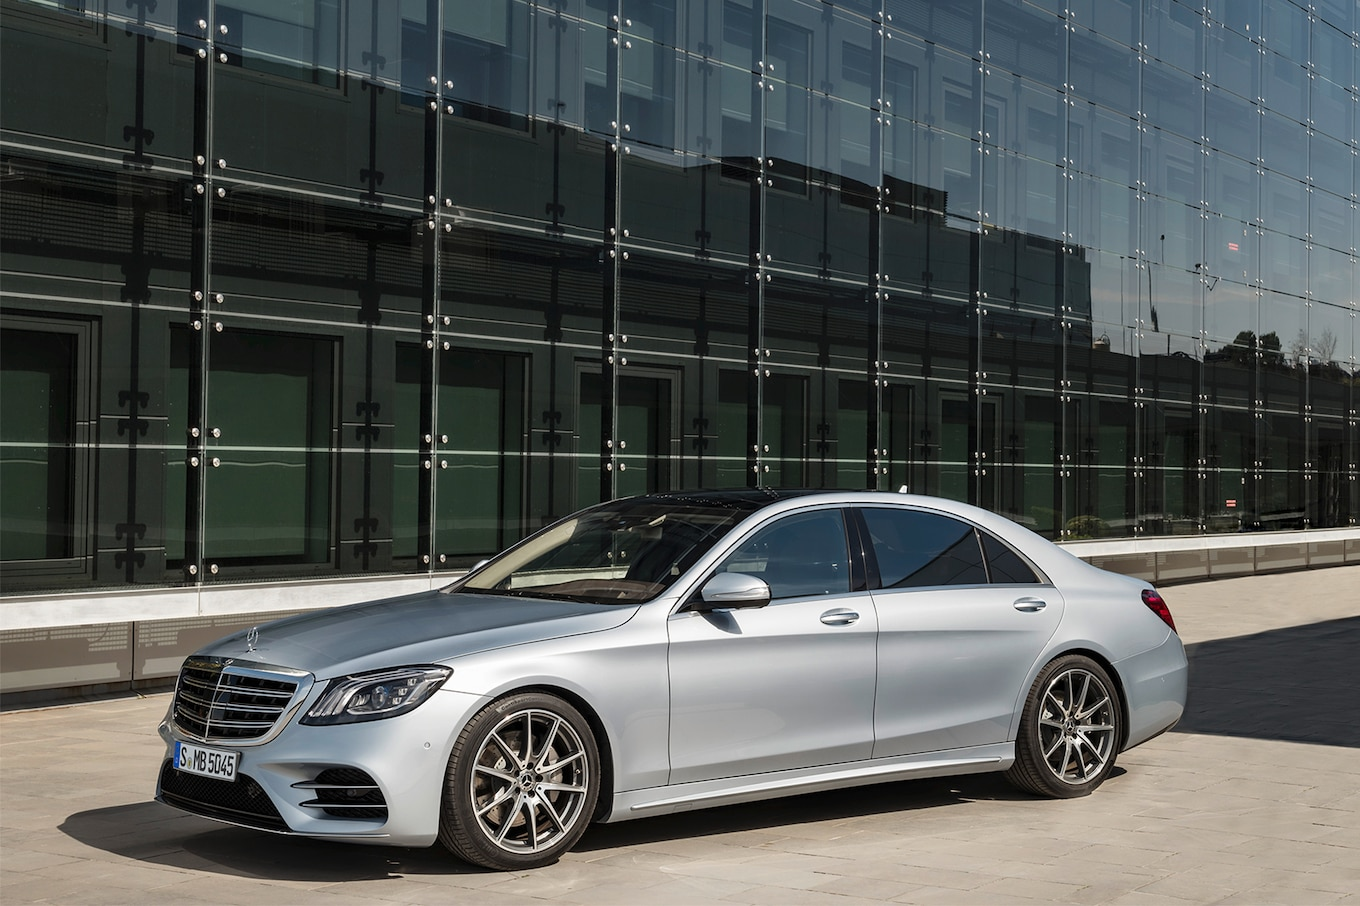 2018 Mercedes-Benz S-Class First Look Review - Motor Trend Canada